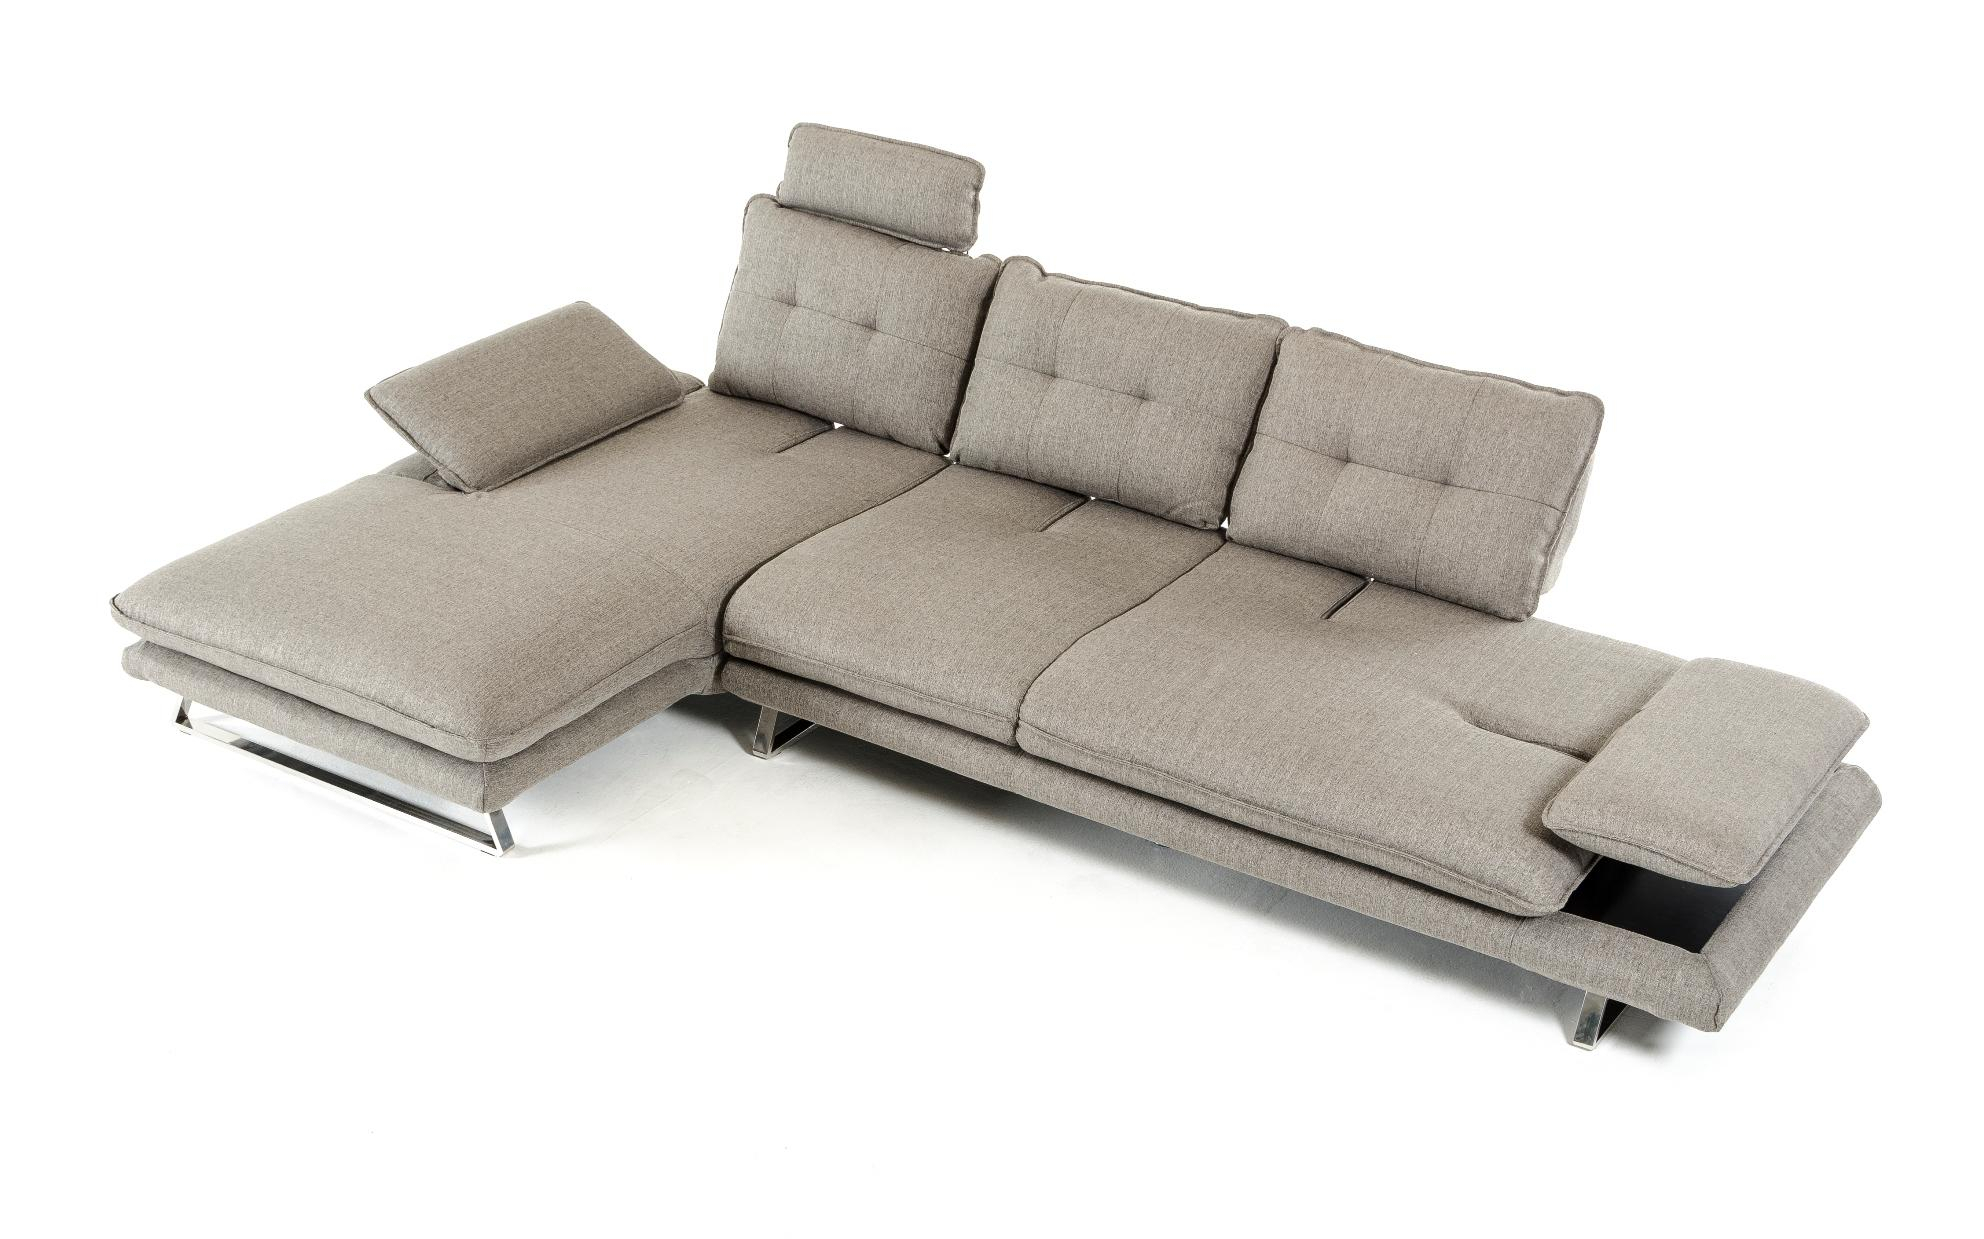 Grey Fabric Tufted Sectional Sofa Vig Divani Casa Porter Pertaining To 2Pc Connel Modern Chaise Sectional Sofas Black (View 15 of 15)